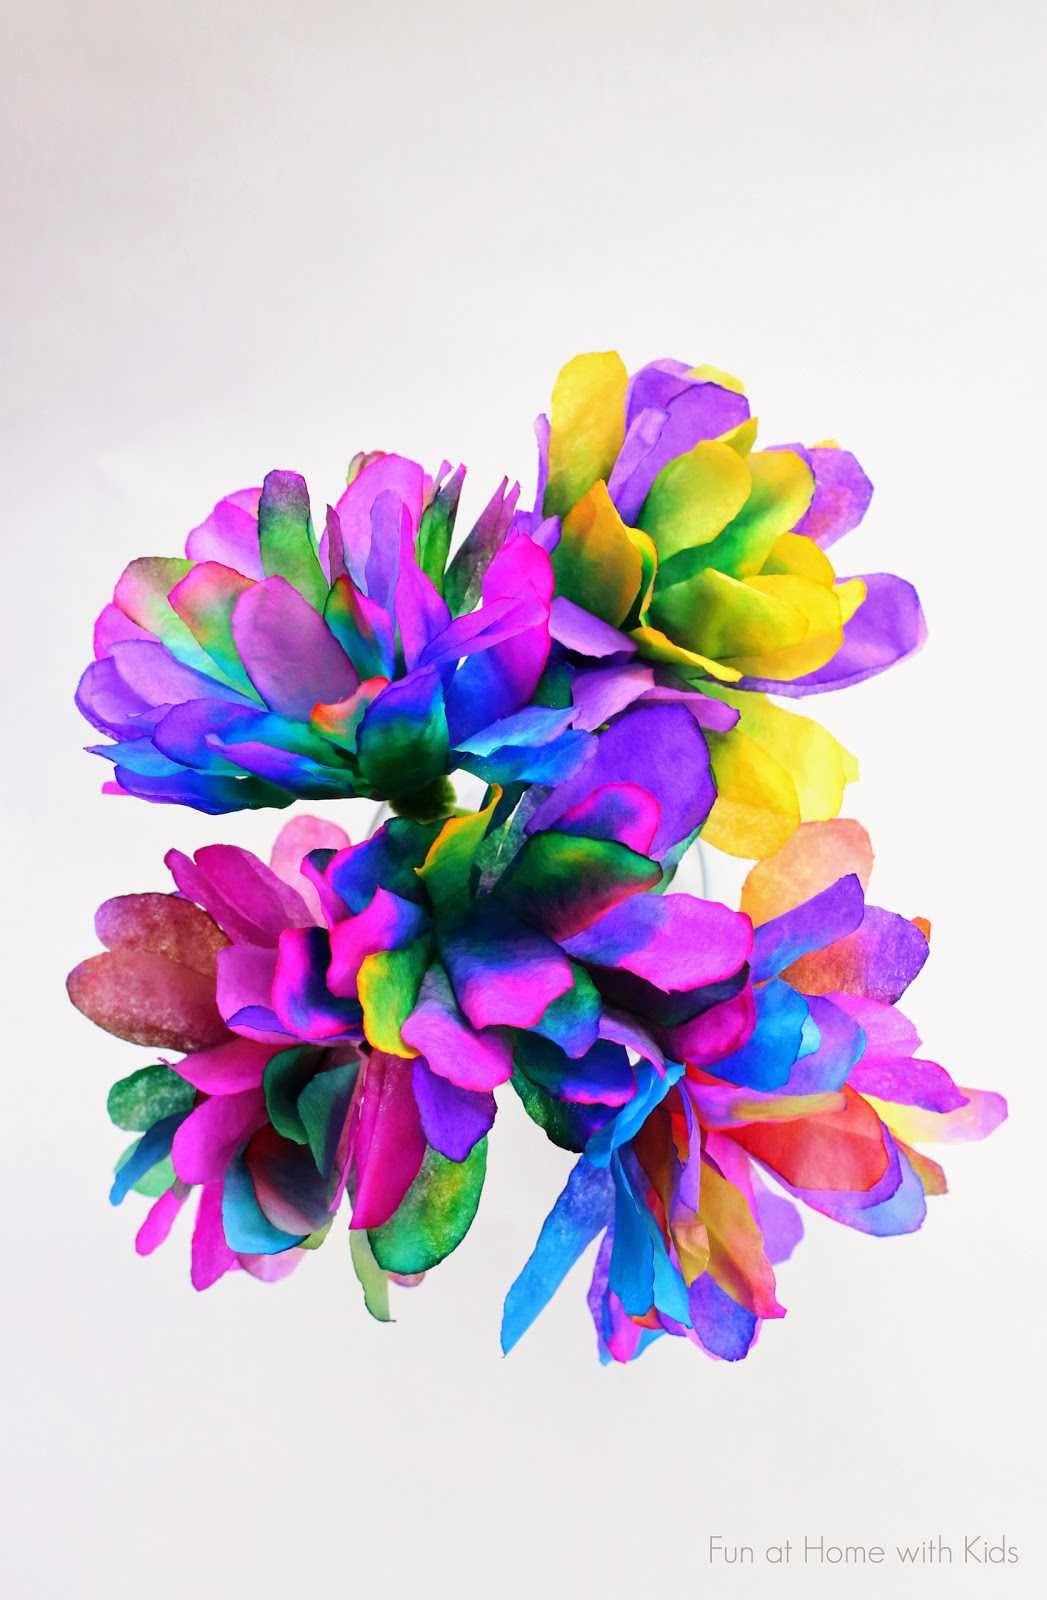 Vibrant Flower Pictures.